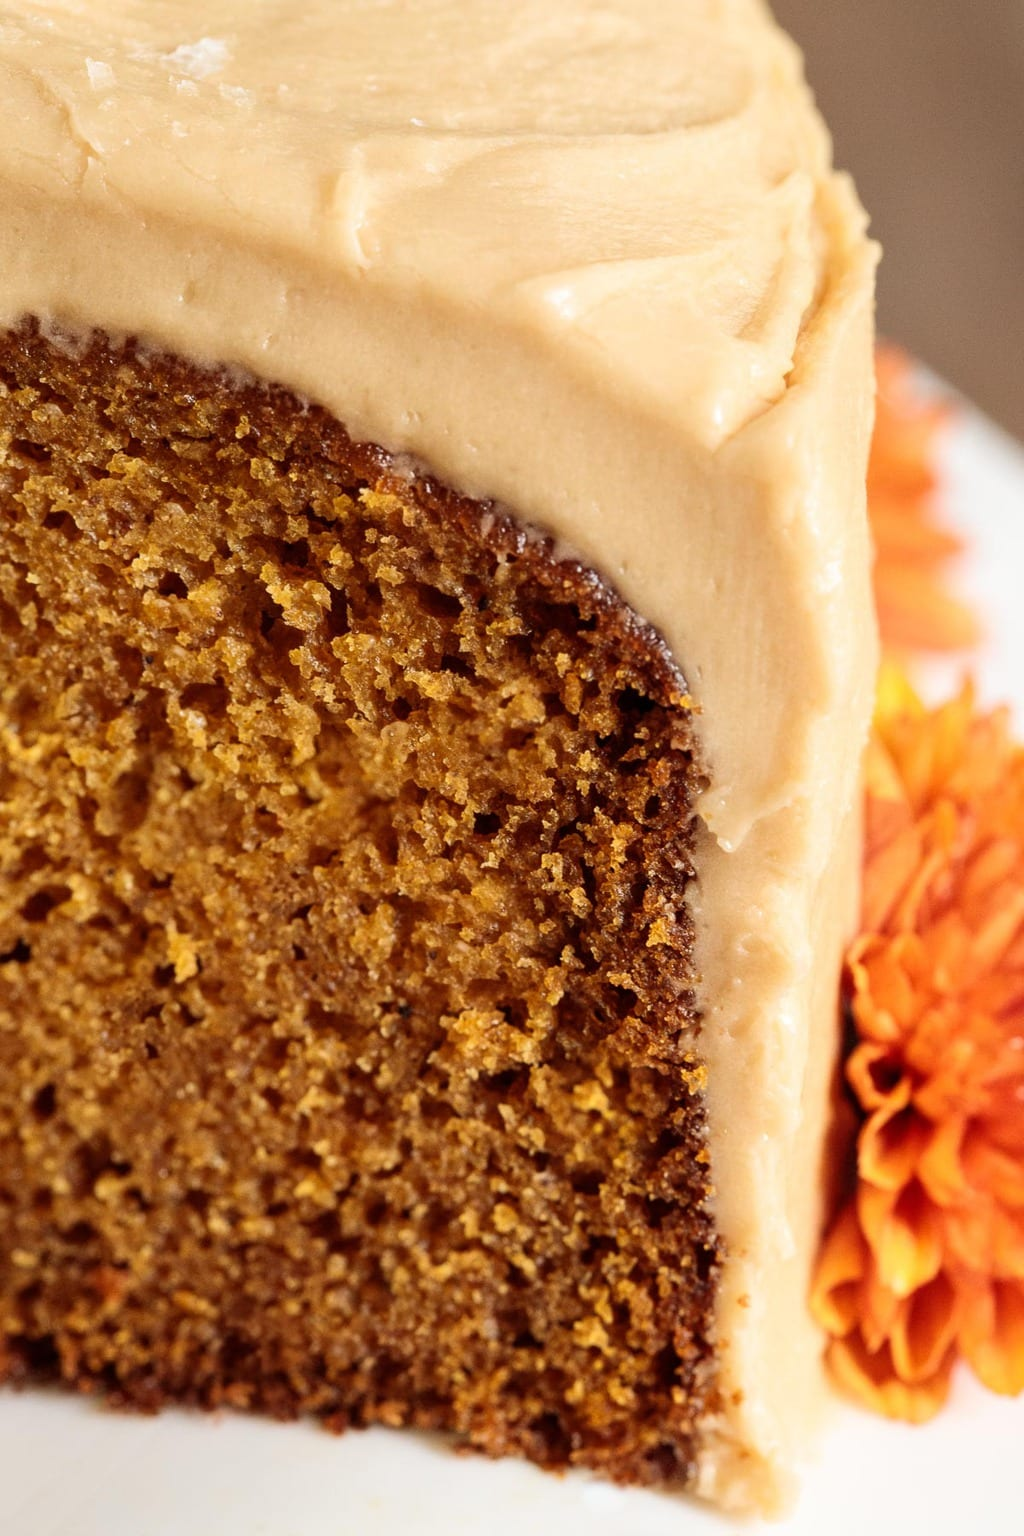 Extreme closeup photo of the inside of a One-Bowl Pumpkin Cake with Salted Caramel Icing.